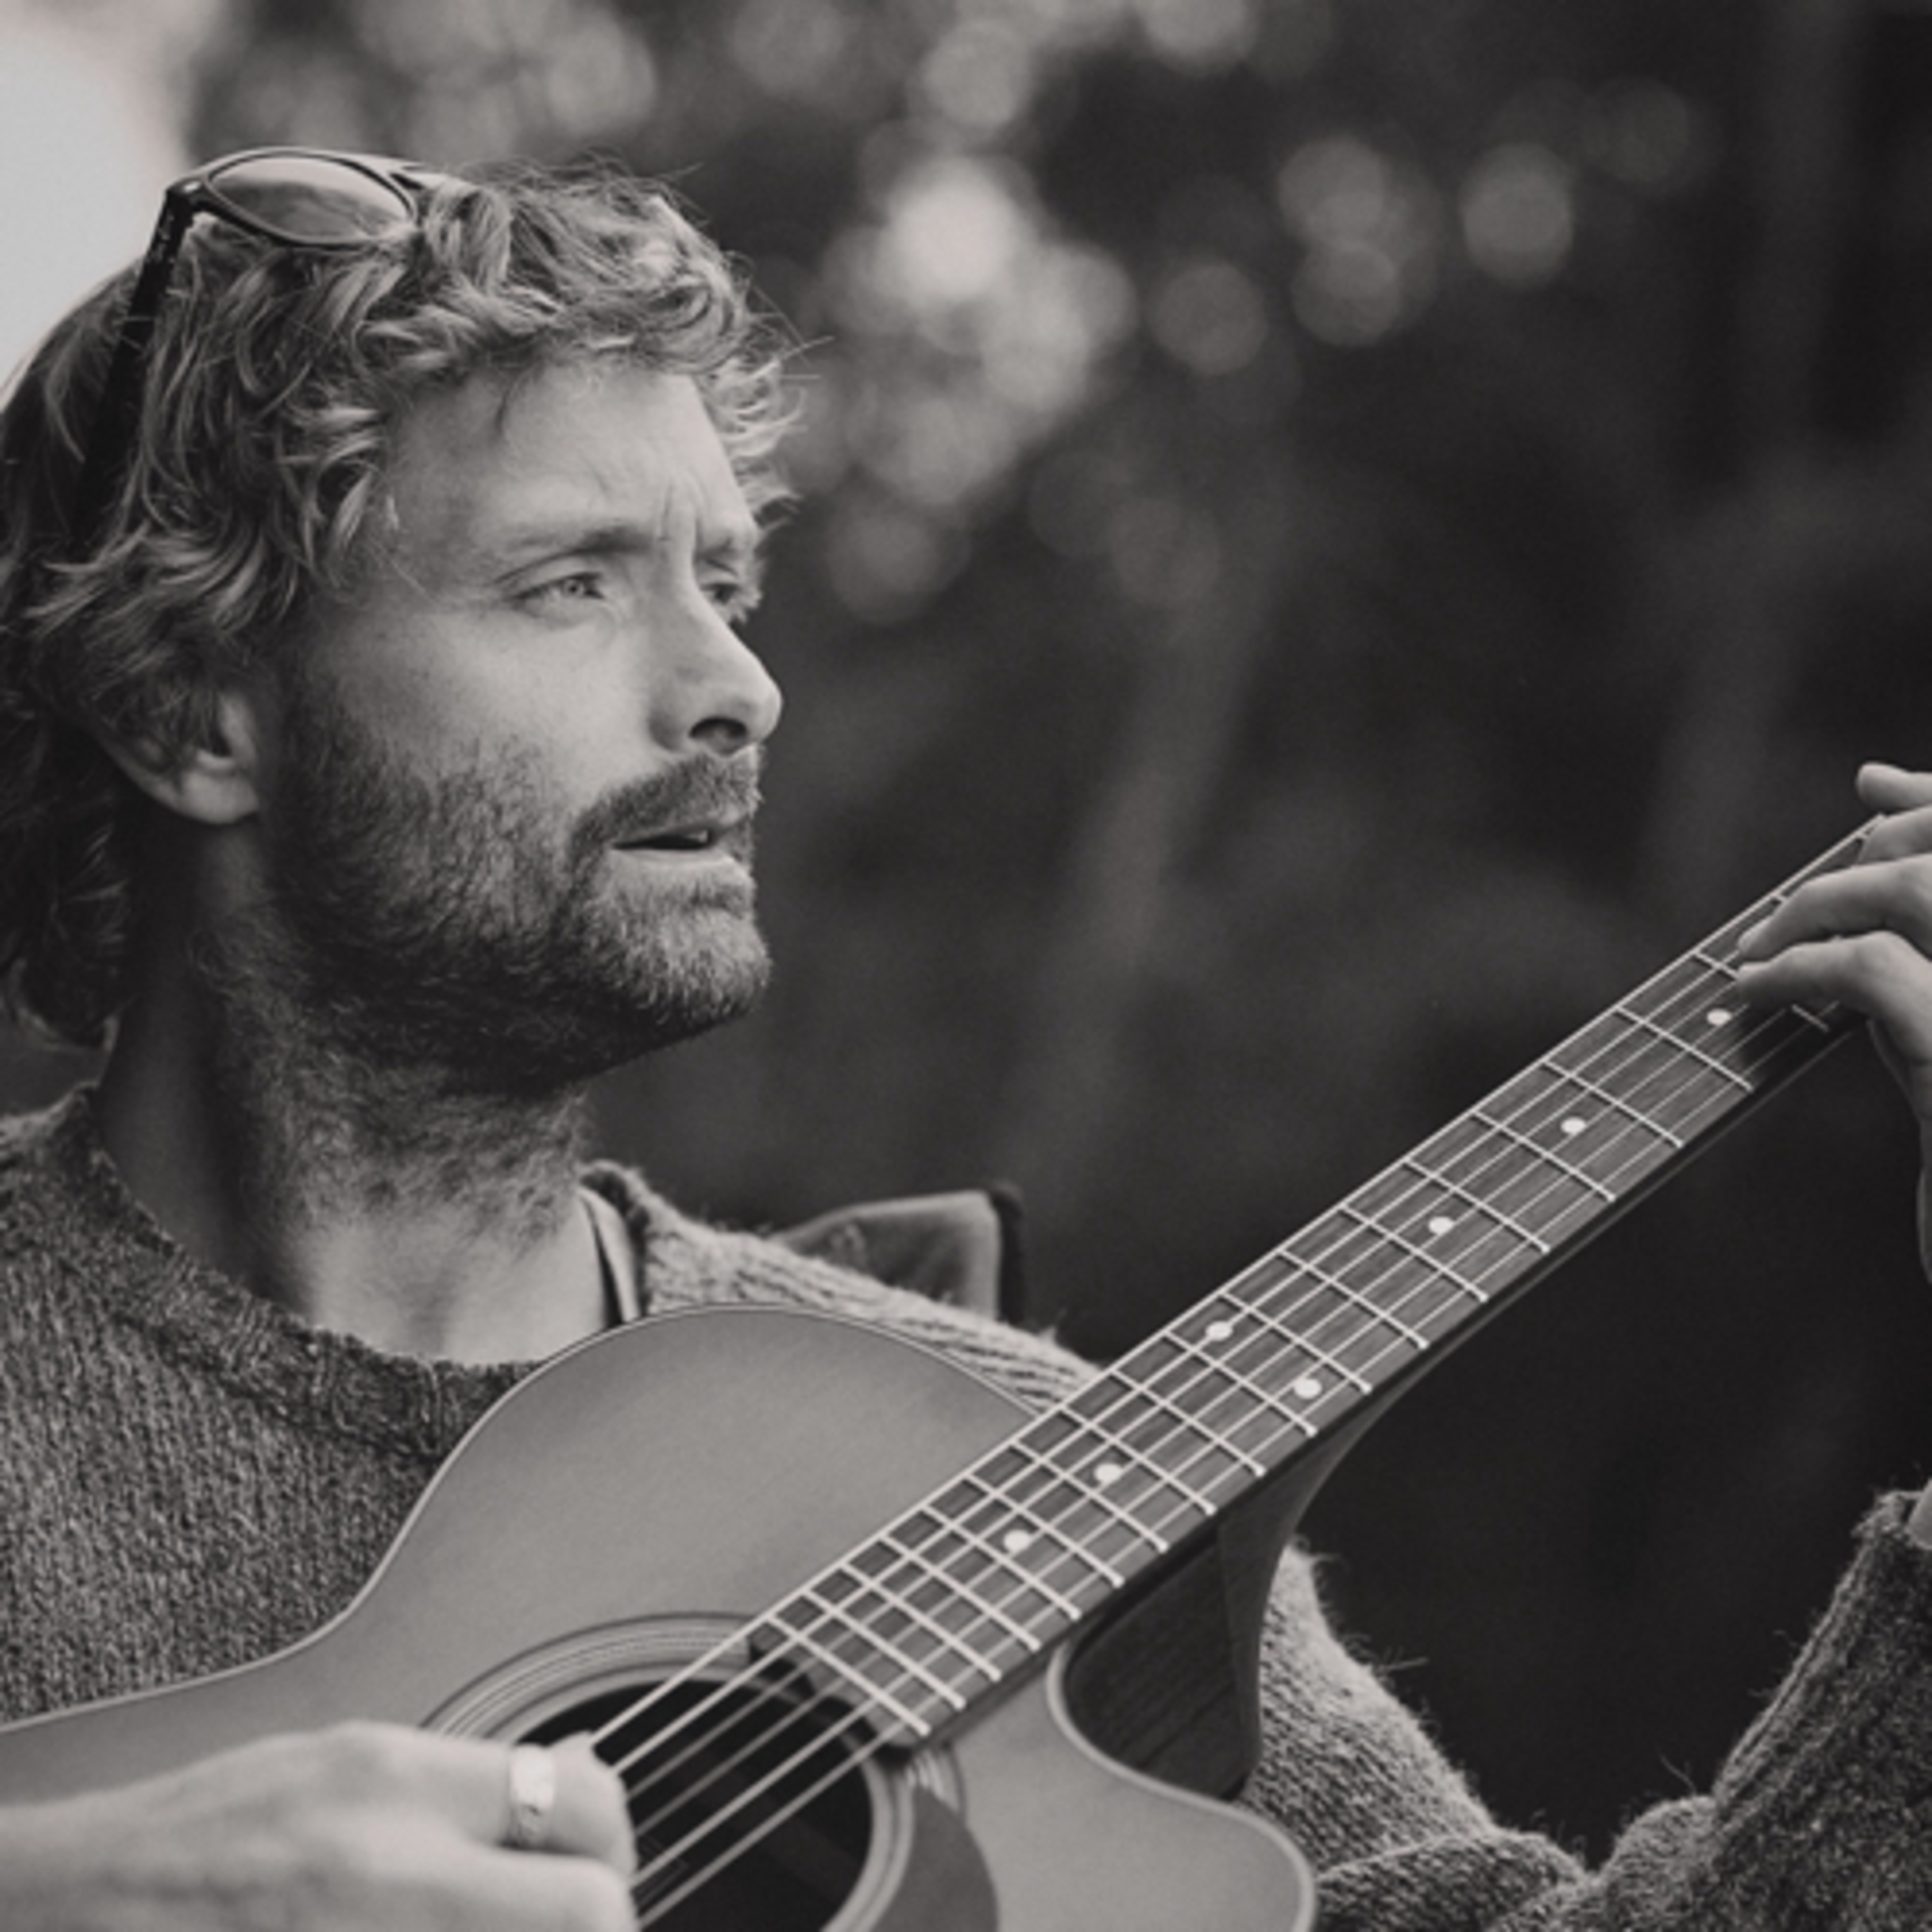 EP 23-musician Mattie Barker takes his open heart & live performance on the road to heal communities